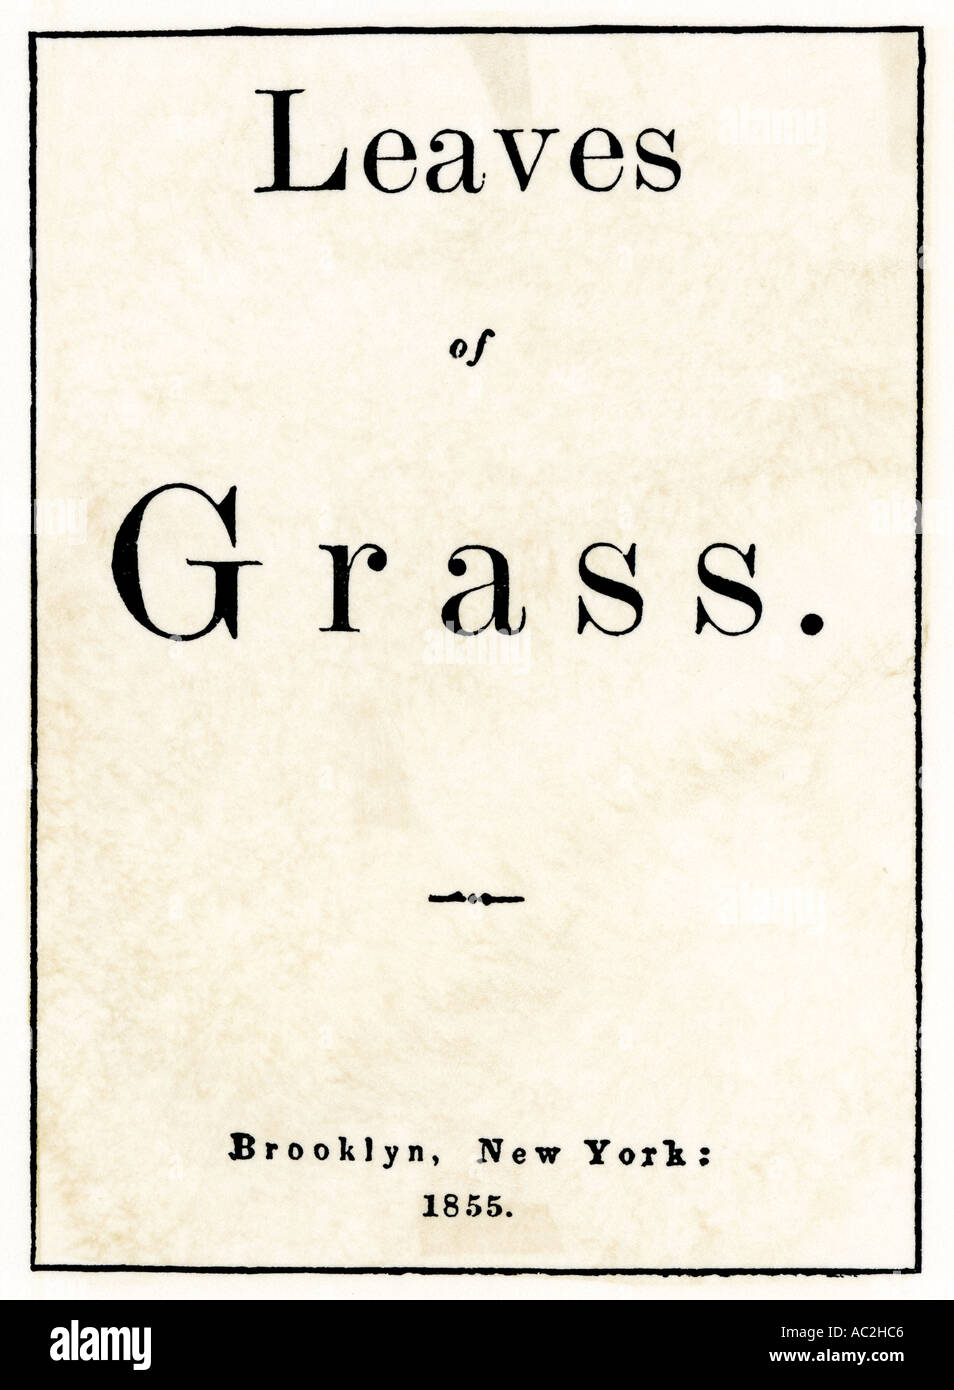 walt whitman leaves of grass poem